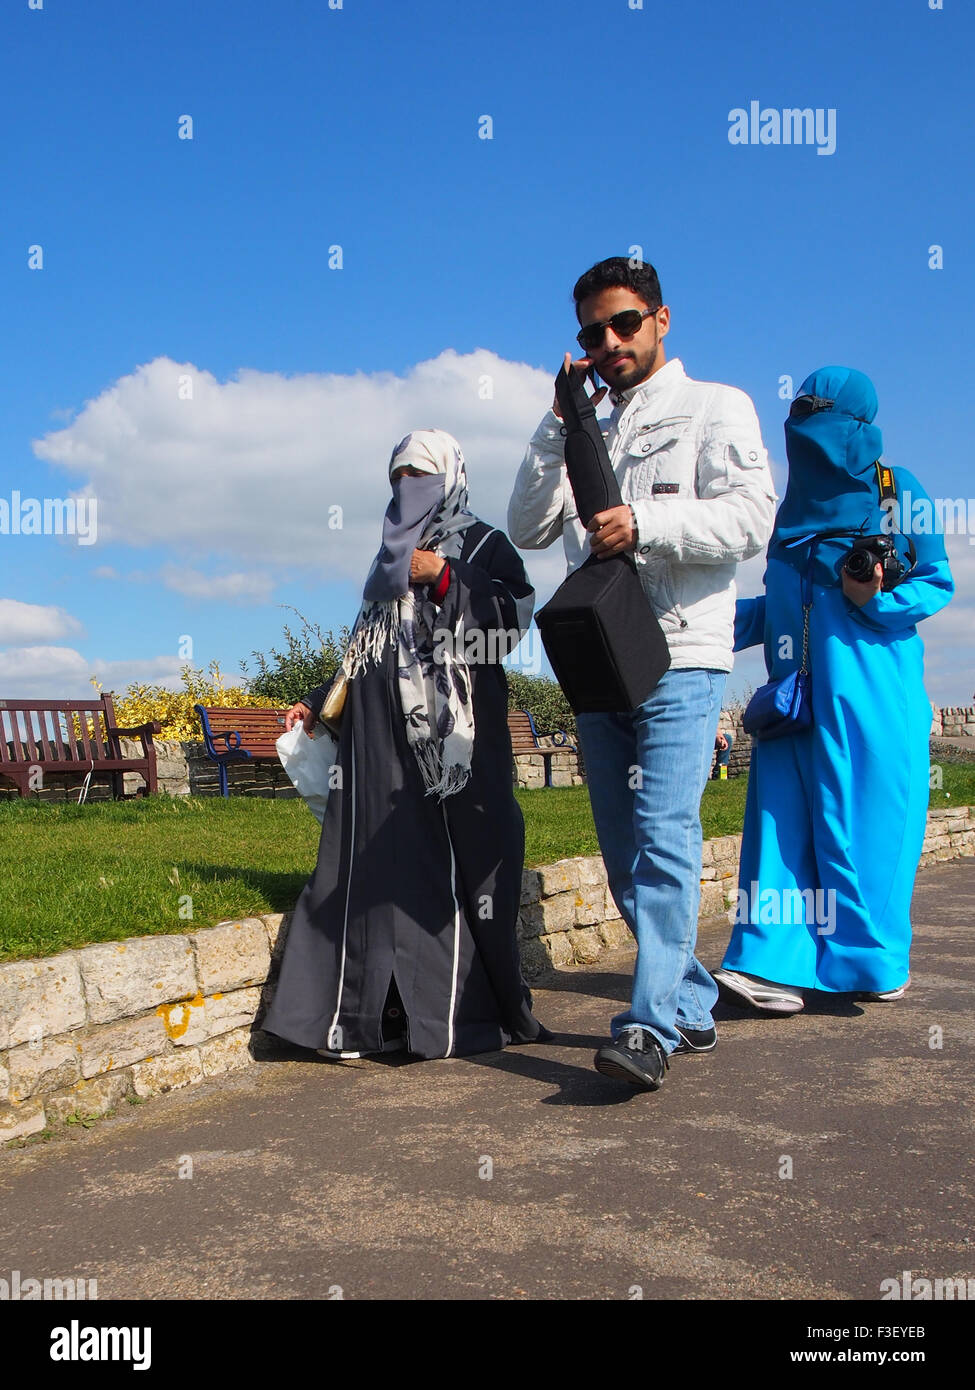 A muslim male in western clothes and two females wearing traditional Niqabs - Stock Image